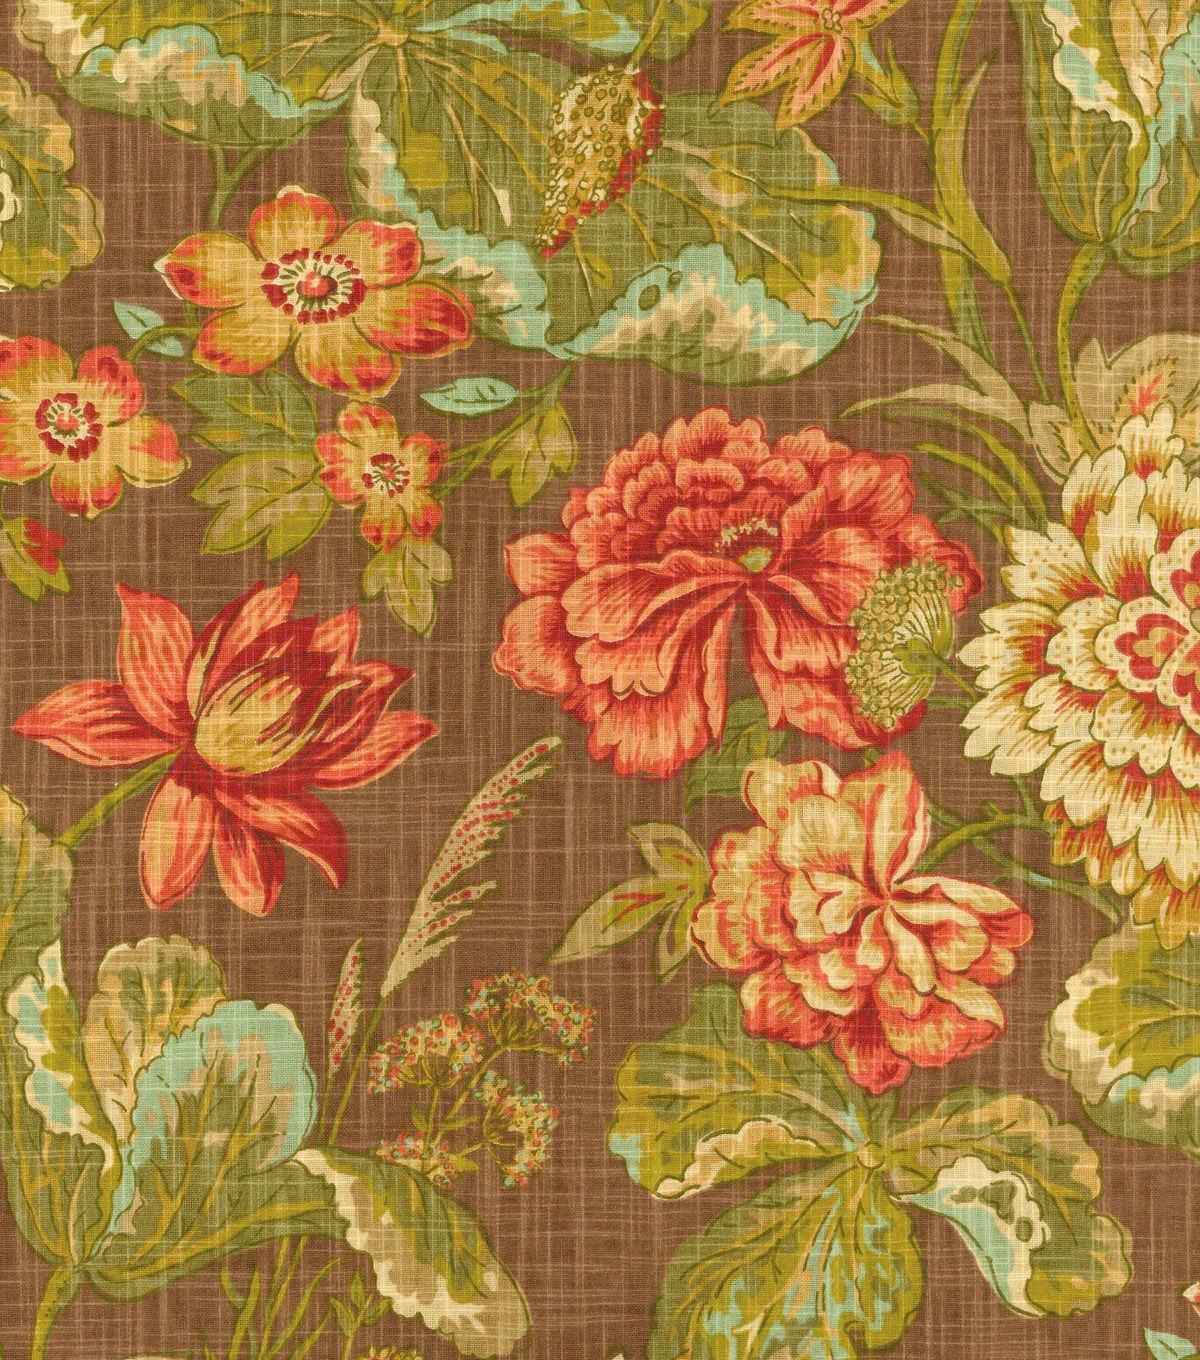 Kitchen Curtains Fabric Vintage Ki Curtains Fabric: Upholstery Fabric-Waverly Sonnet Sublime Vintage